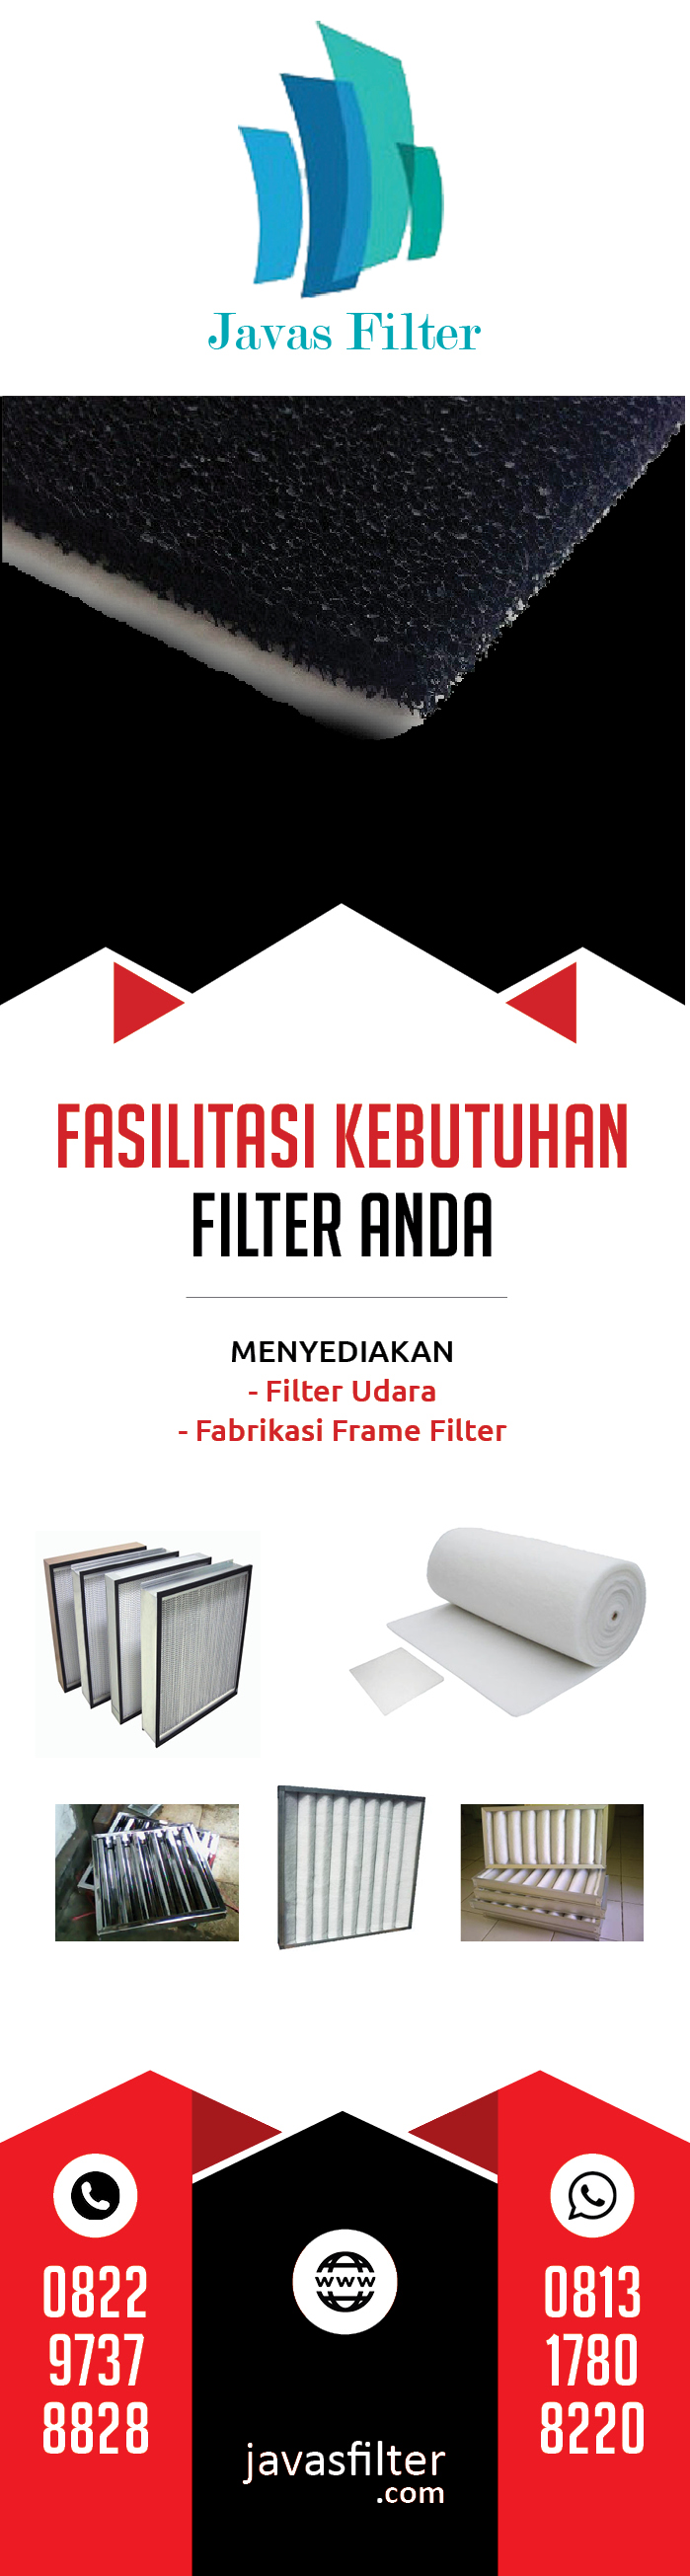 banner 160x600